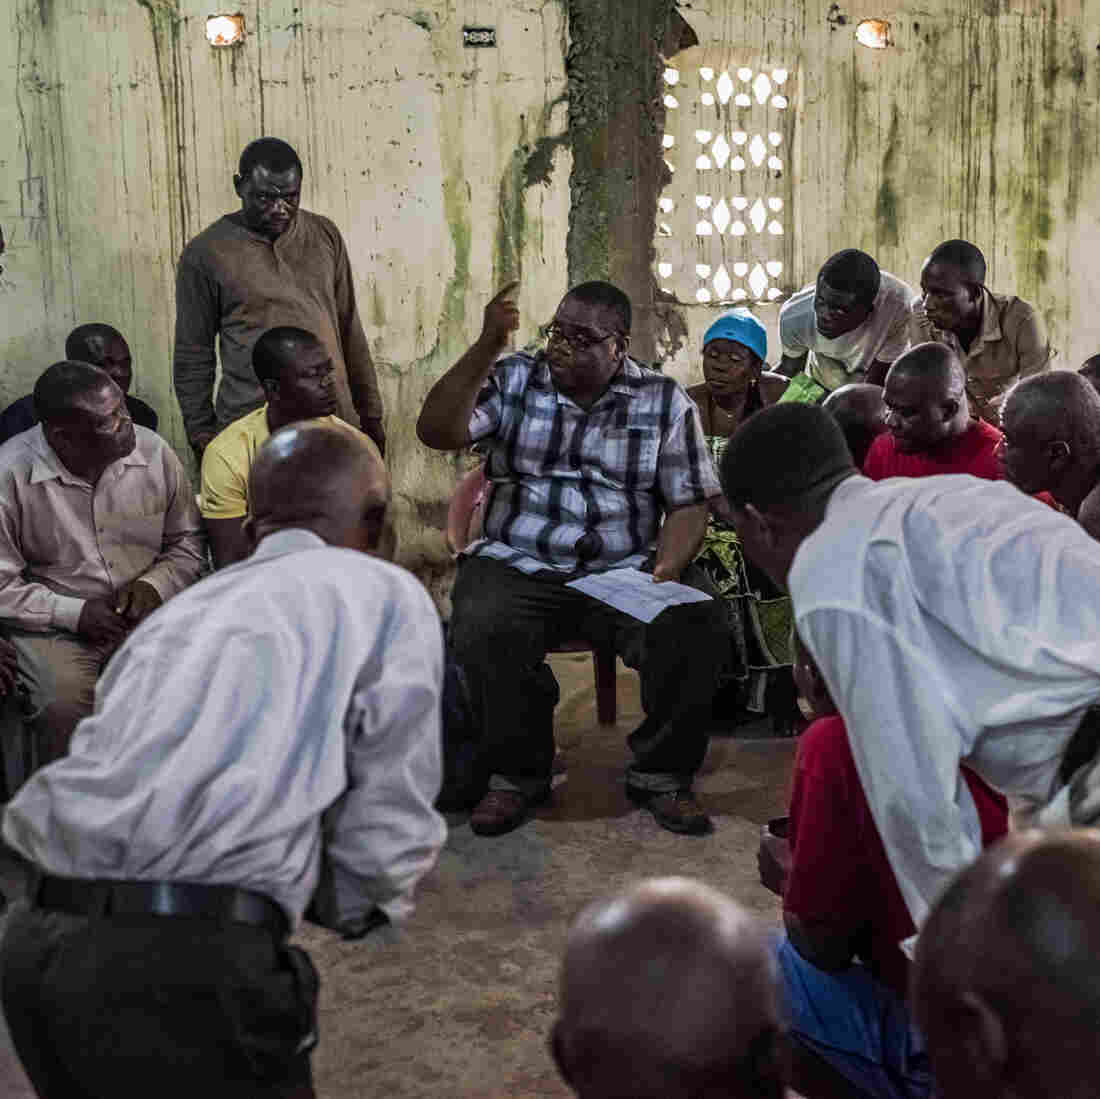 Dr. Mosoka Fallah (center), an epidemiologist who investigates cases of Ebola, meets with residents of New Kru Town, a district in Monrovia, Liberia.